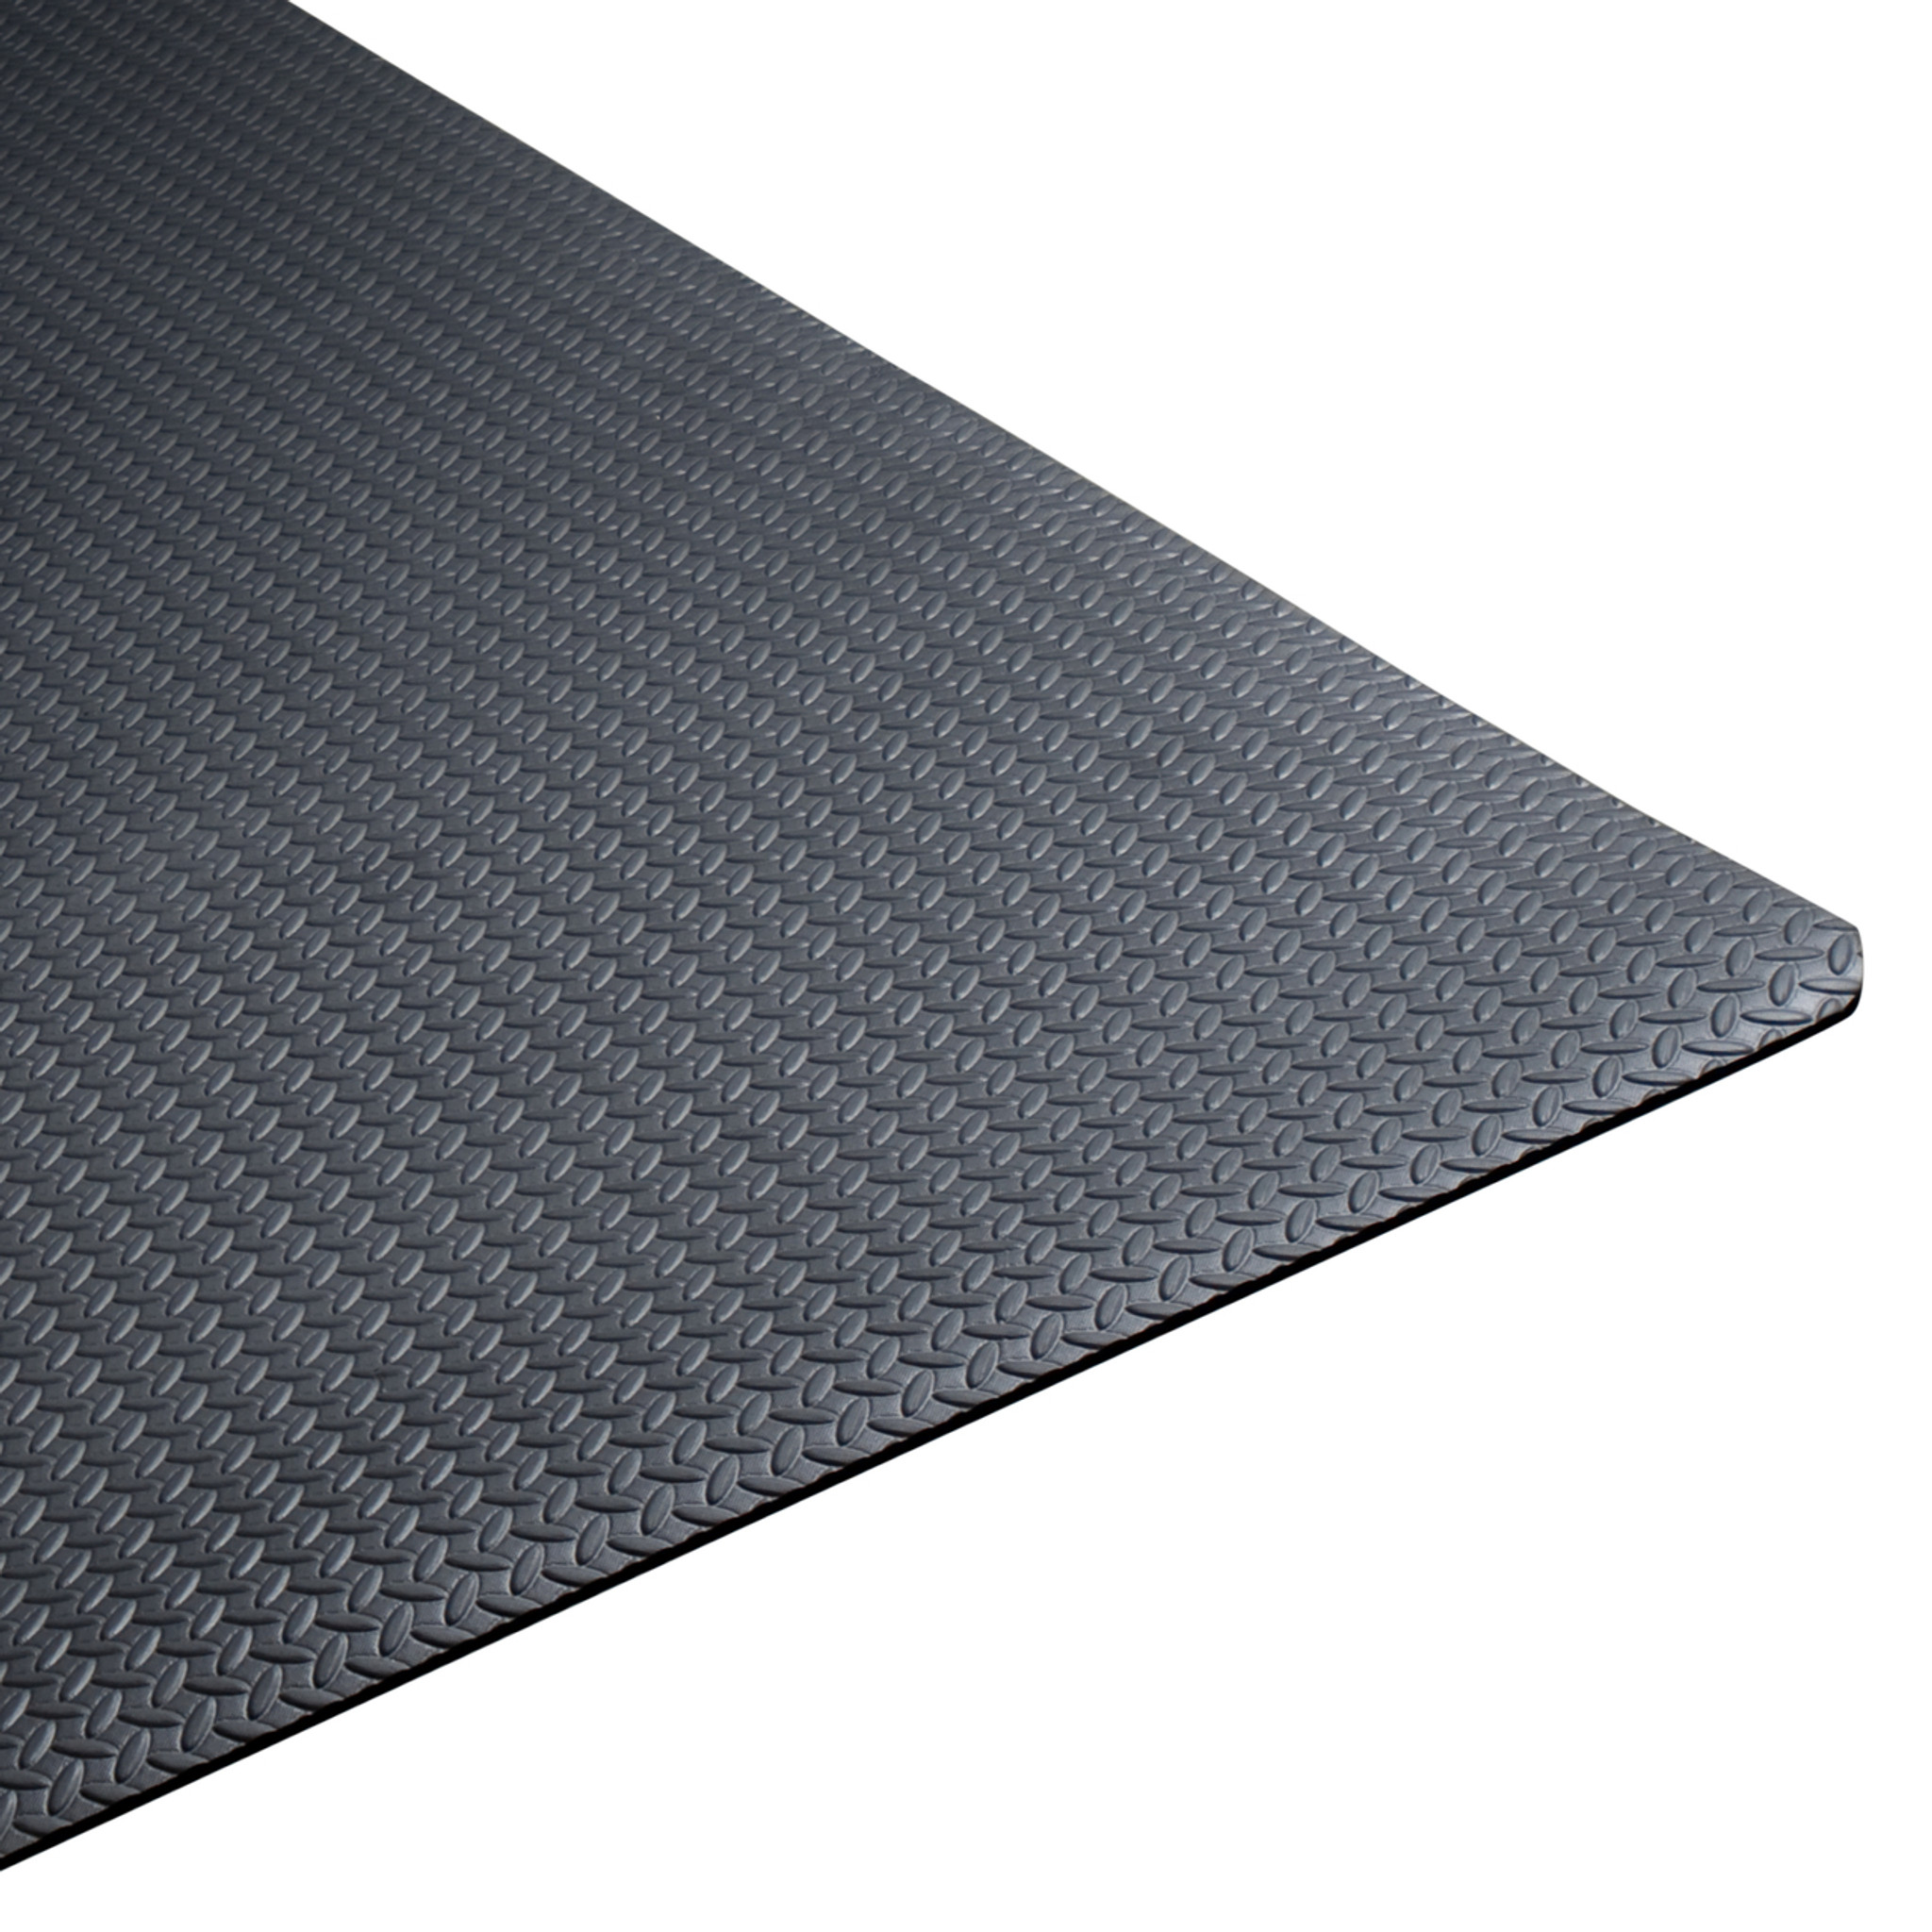 foam gym yvonna play baby from eva floor com mat pile new puzzle covering product dhgate mats kids